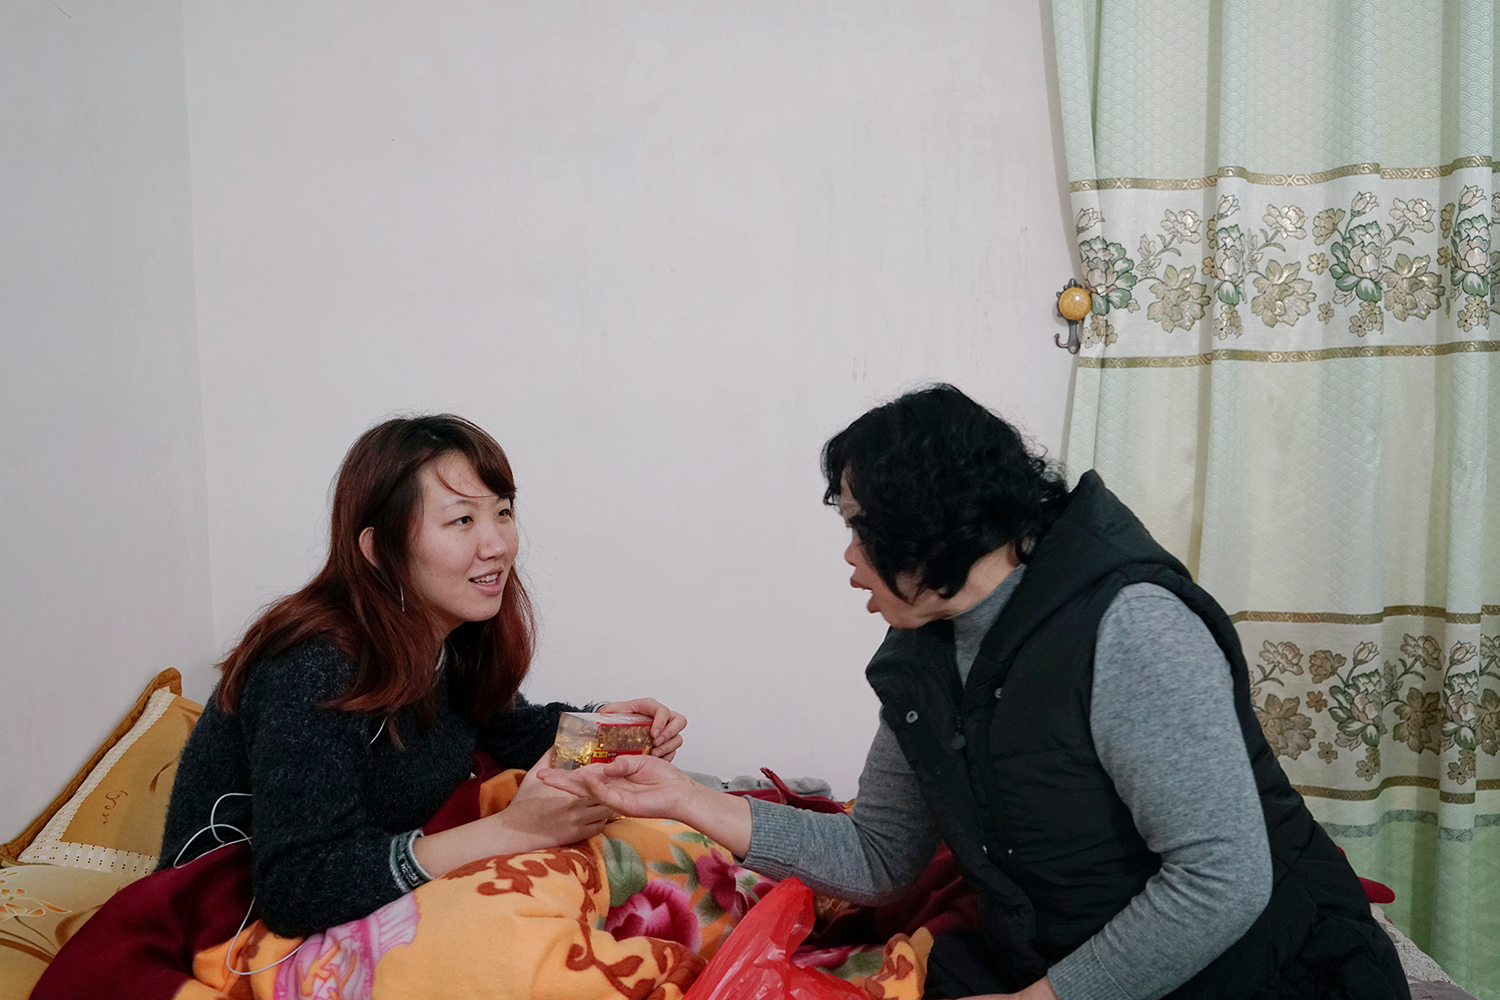 January 29, the second day of the Lunar New Year, Nong Xiurong (right) gives a pack of tea leaves to Zhao Yuqing (left) as a gift before Zhao and Nong's son Wang Quanming end their visit, in Anxi, Fujian province. Wang hired Zhao to pose as his girlfriend so his family would stop pressuring him to find a wife. China's gender imbalance sometimes makes it difficult for men to find a partner. (Muyi Xiao/Reuters)